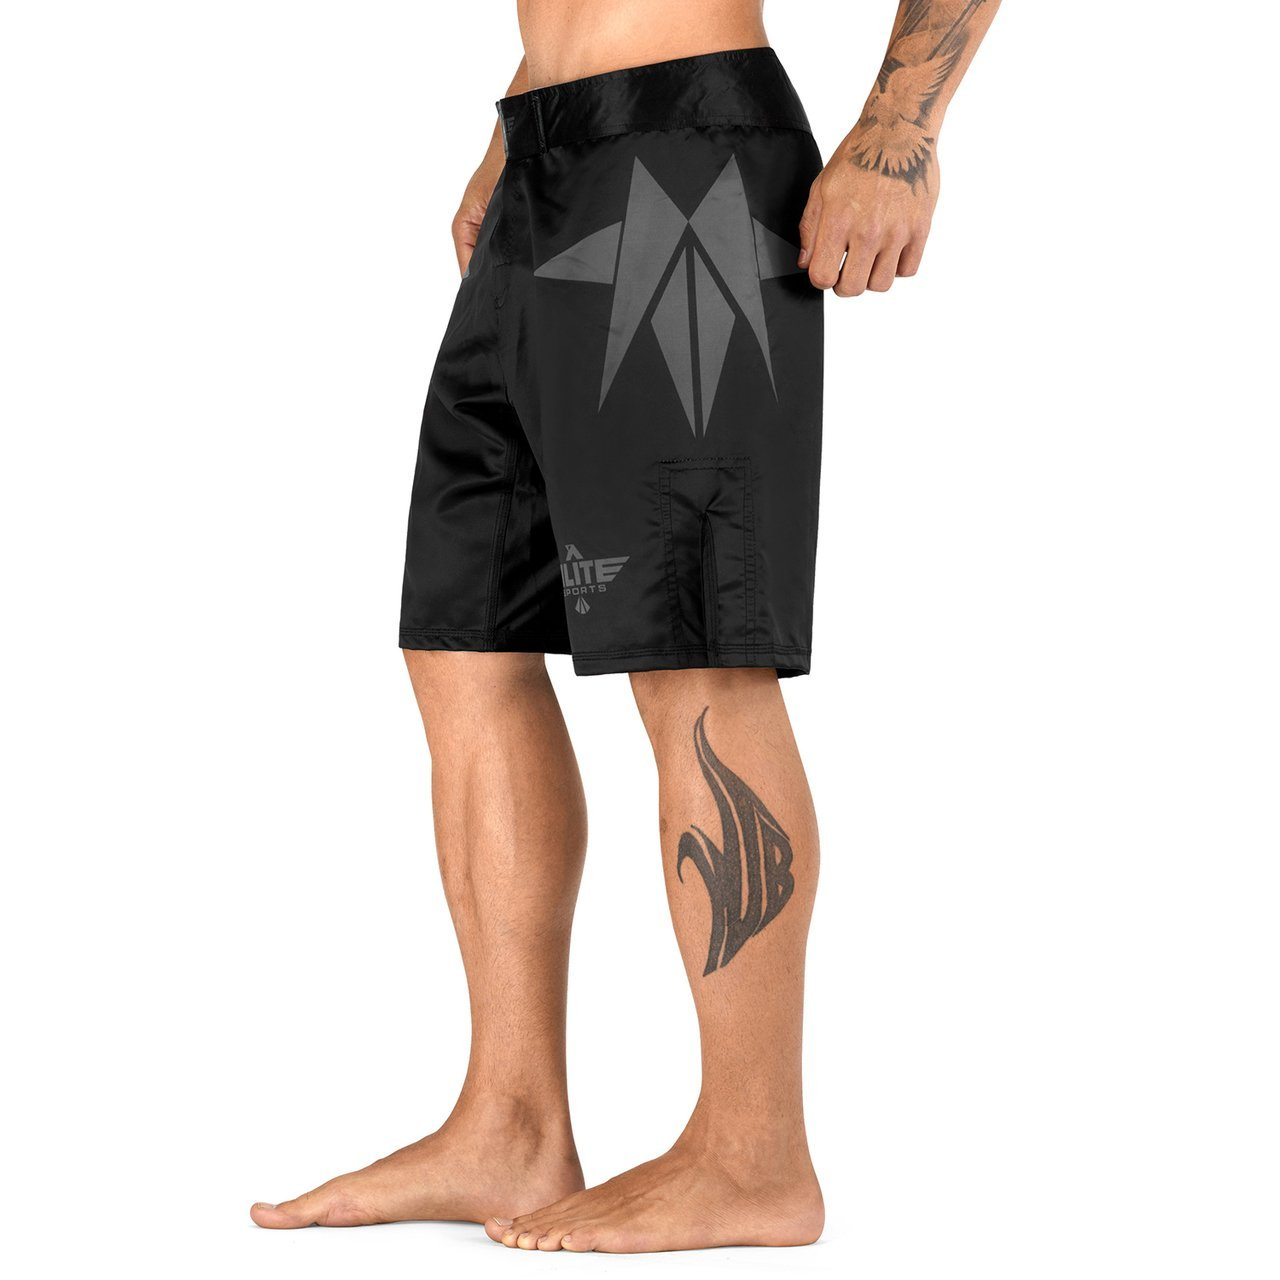 Load image into Gallery viewer, Elite Sports Star Series Sublimation Black/Gray Wrestling Shorts